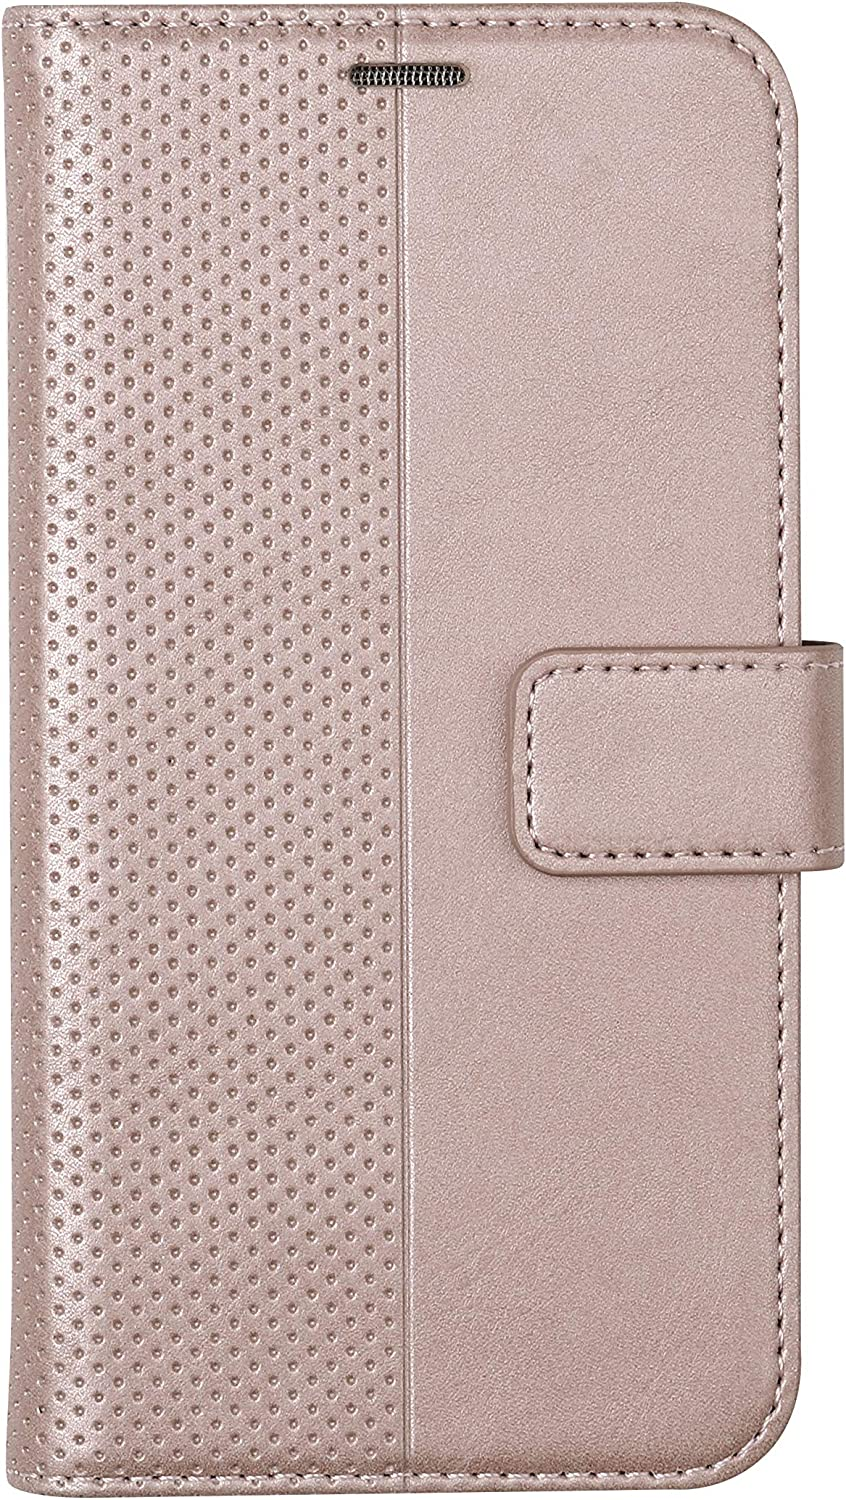 VEST Anti Radiation Wallet Case and Protector for iPhone 11 with RFID Protection Bump & Shock Protection [Rose Gold]